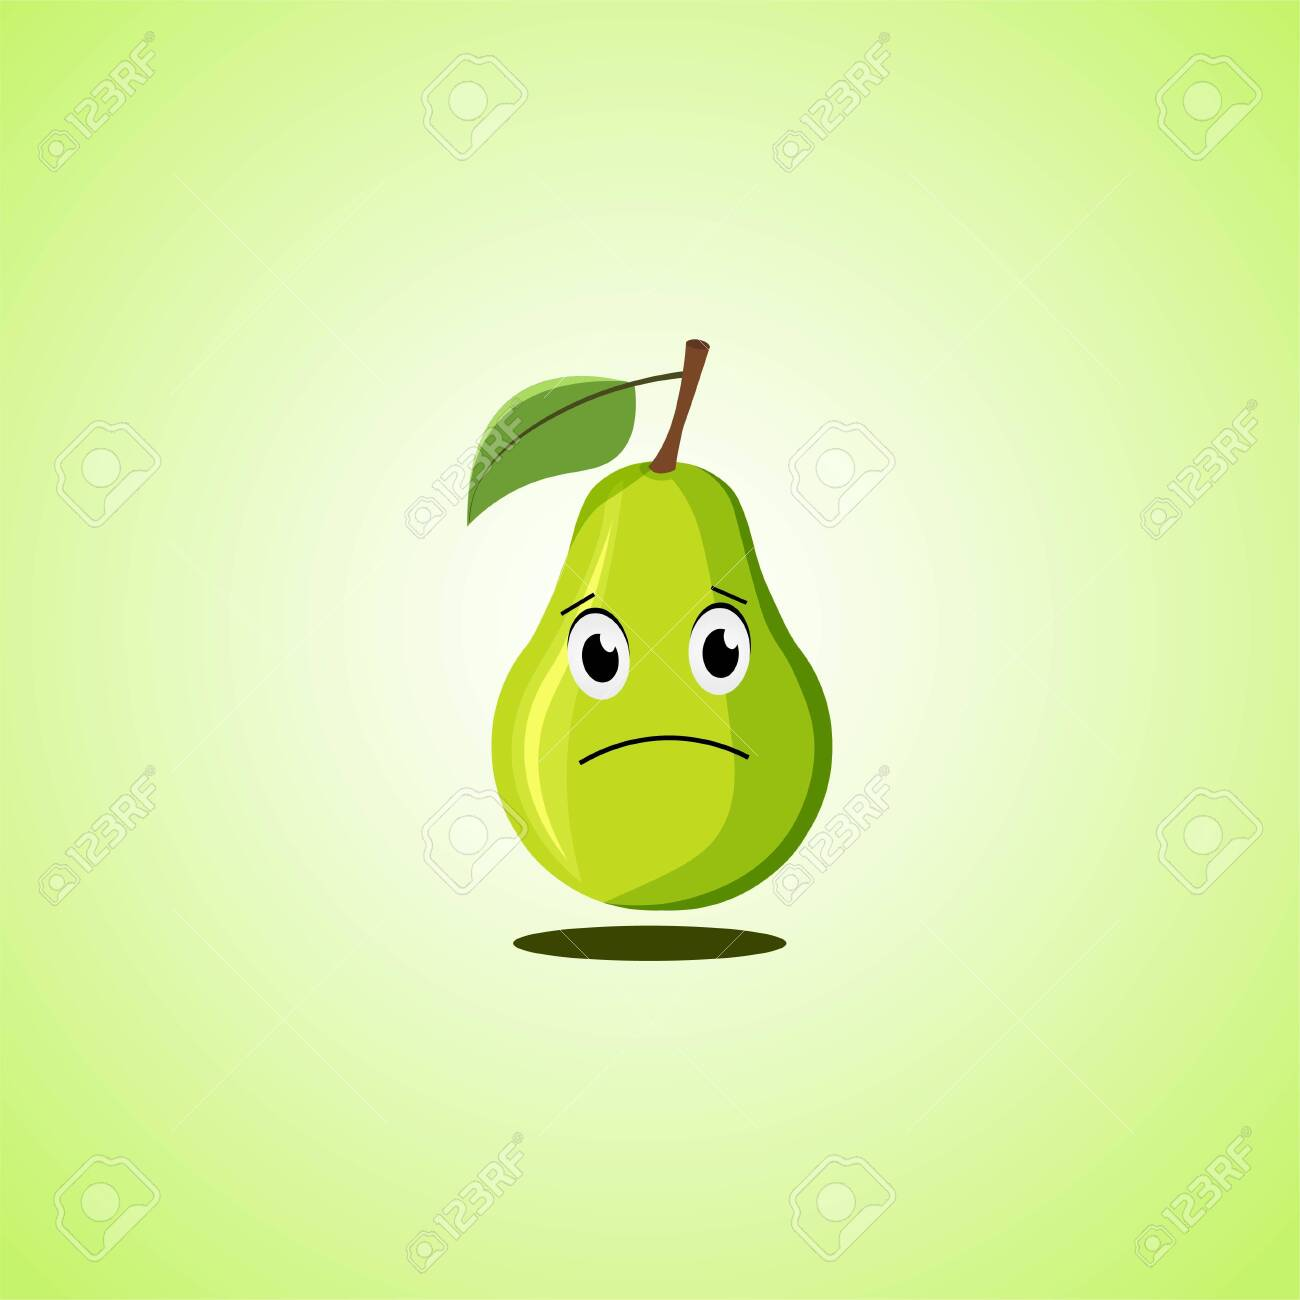 Sad cartoon pear symbol. Cute icon of the pear isolated on green background. Vector illustration EPS 10. - 146548849